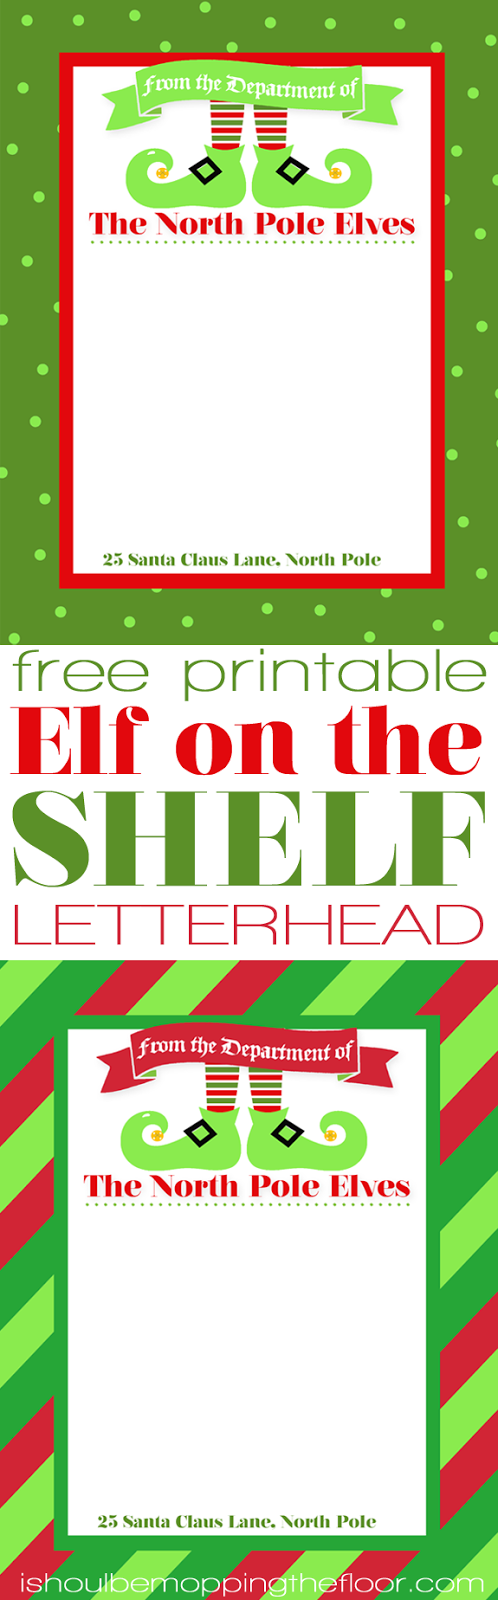 Tactueux image regarding free printable elf on the shelf letter